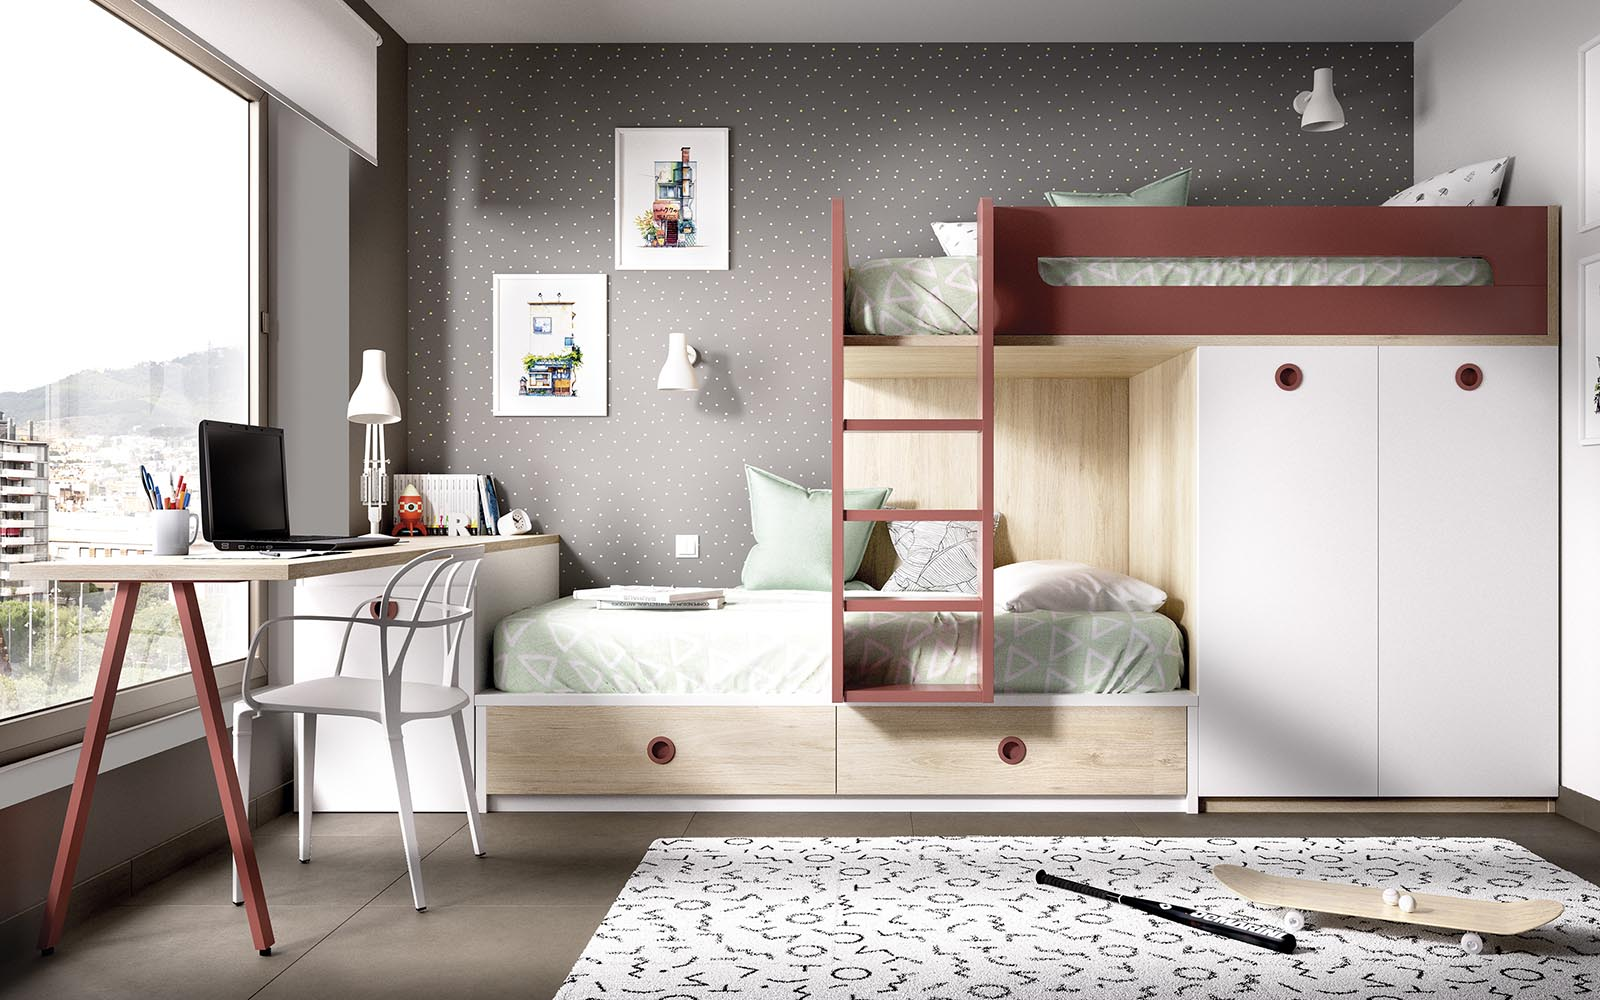 wooden white kids bunk bed with red details, girly bedroom, unisex bedroom wooden bunk bed with cupboards on the bottom of the bed, pano kato krevati me kokkines leptomeries xilino,